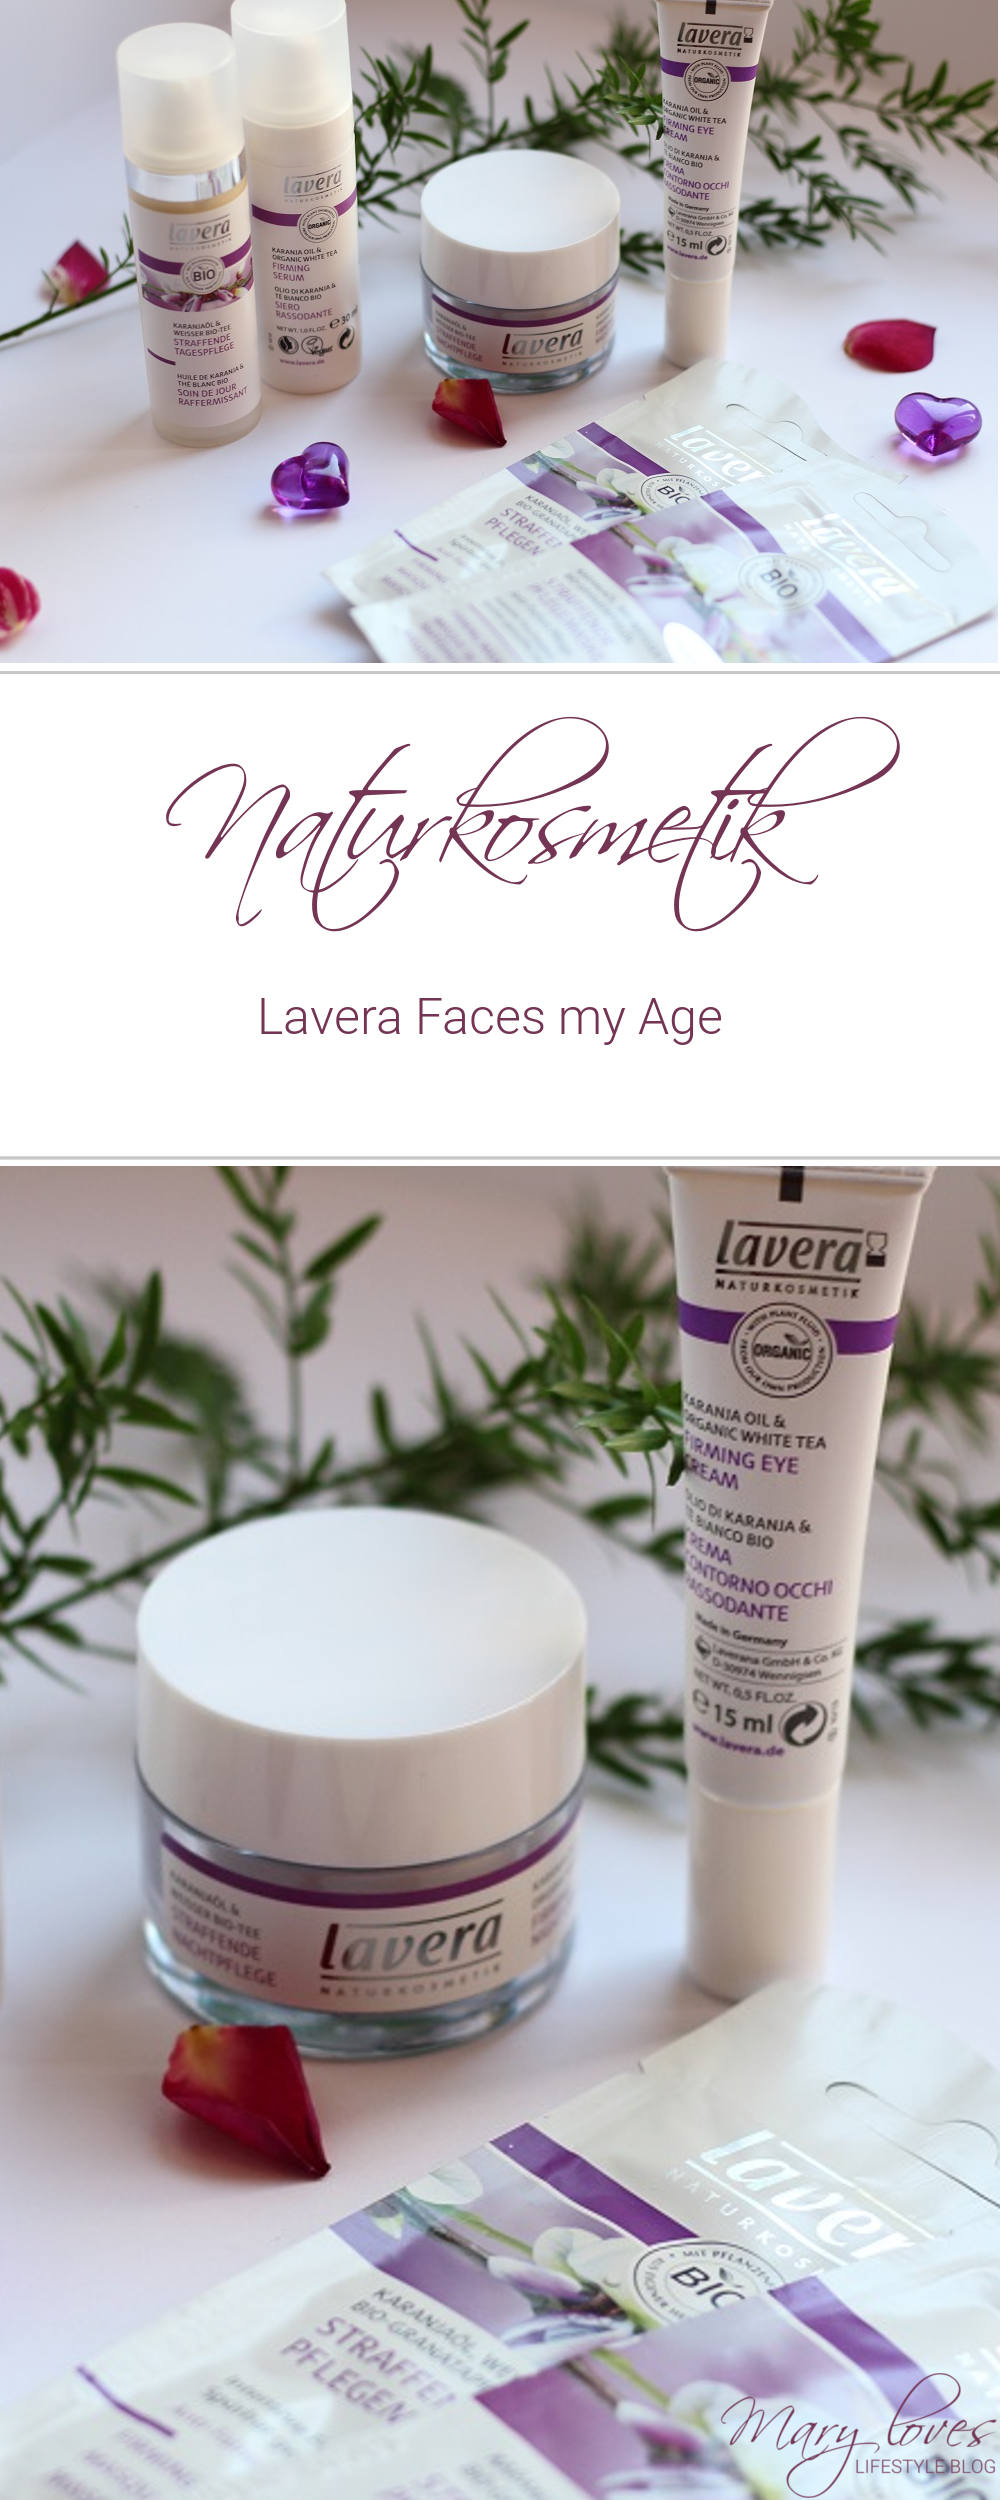 Naturkosmetik - Lavera Faces my Age